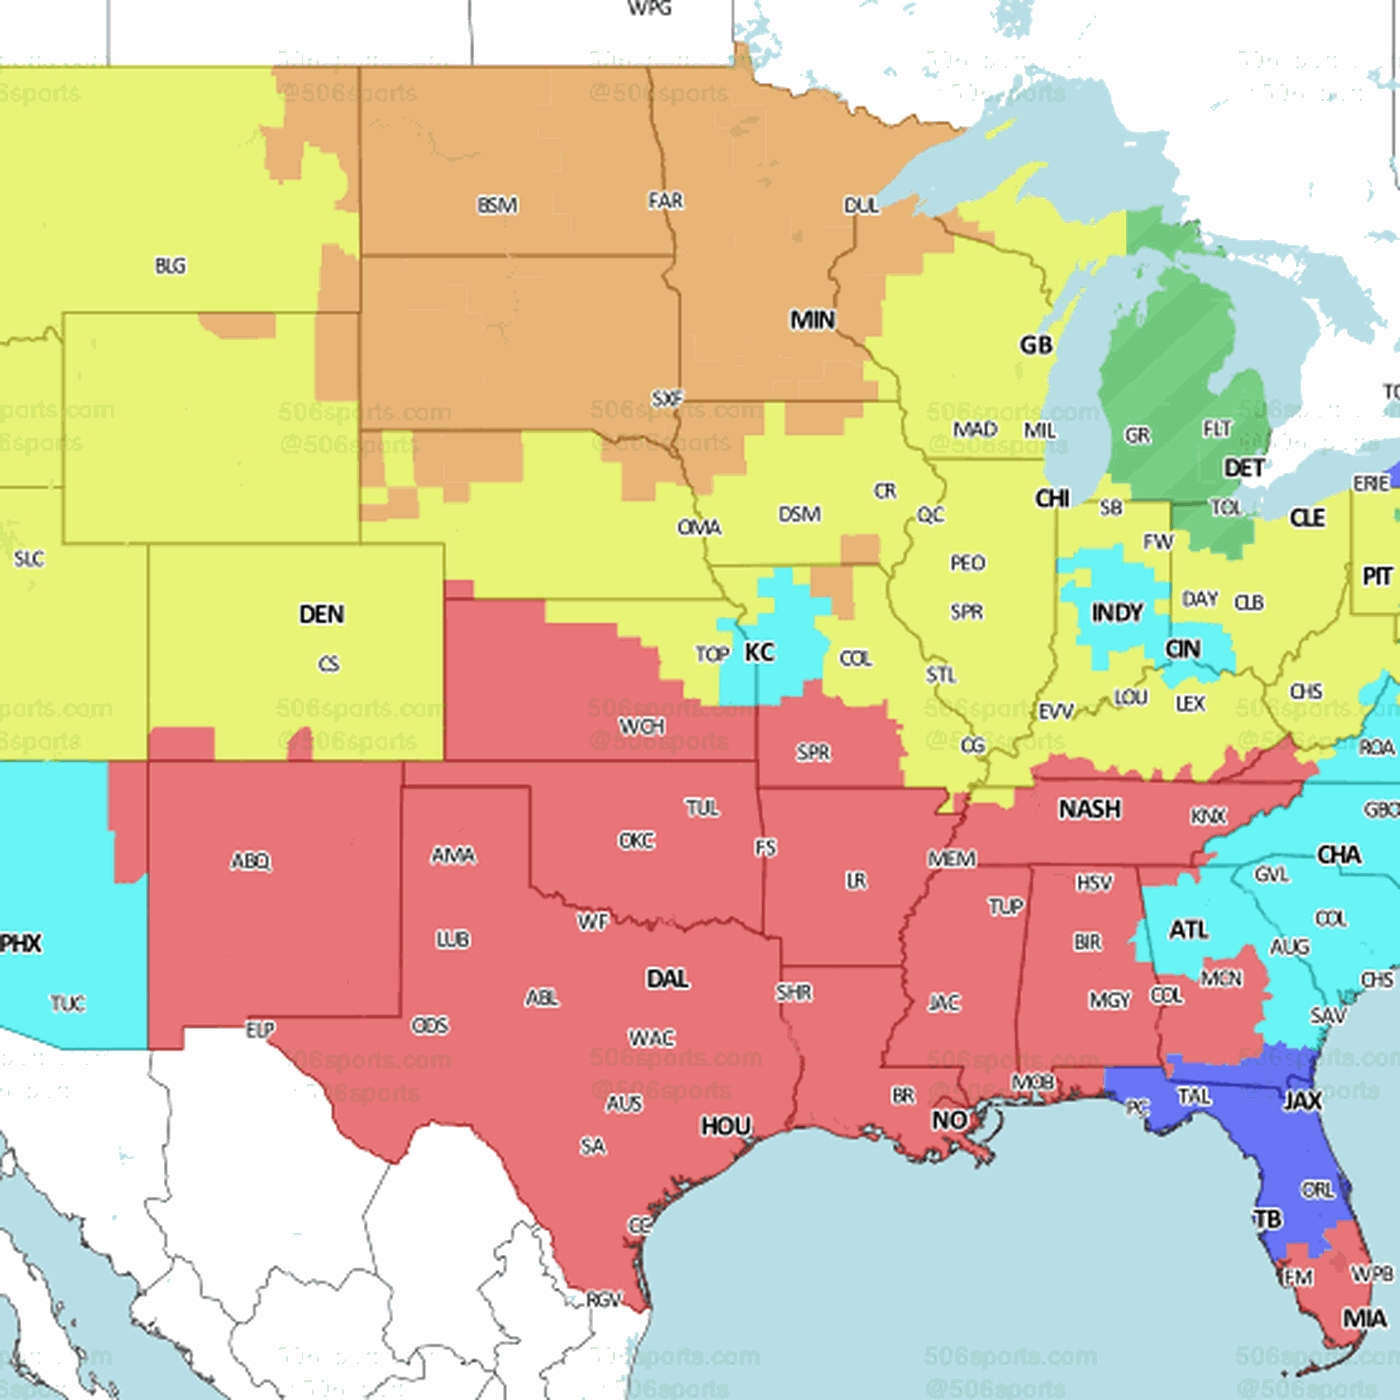 Denver Broncos At Green Bay Packers: Tv Broadcast Map For in Map Of Super Bowl Wins By Country